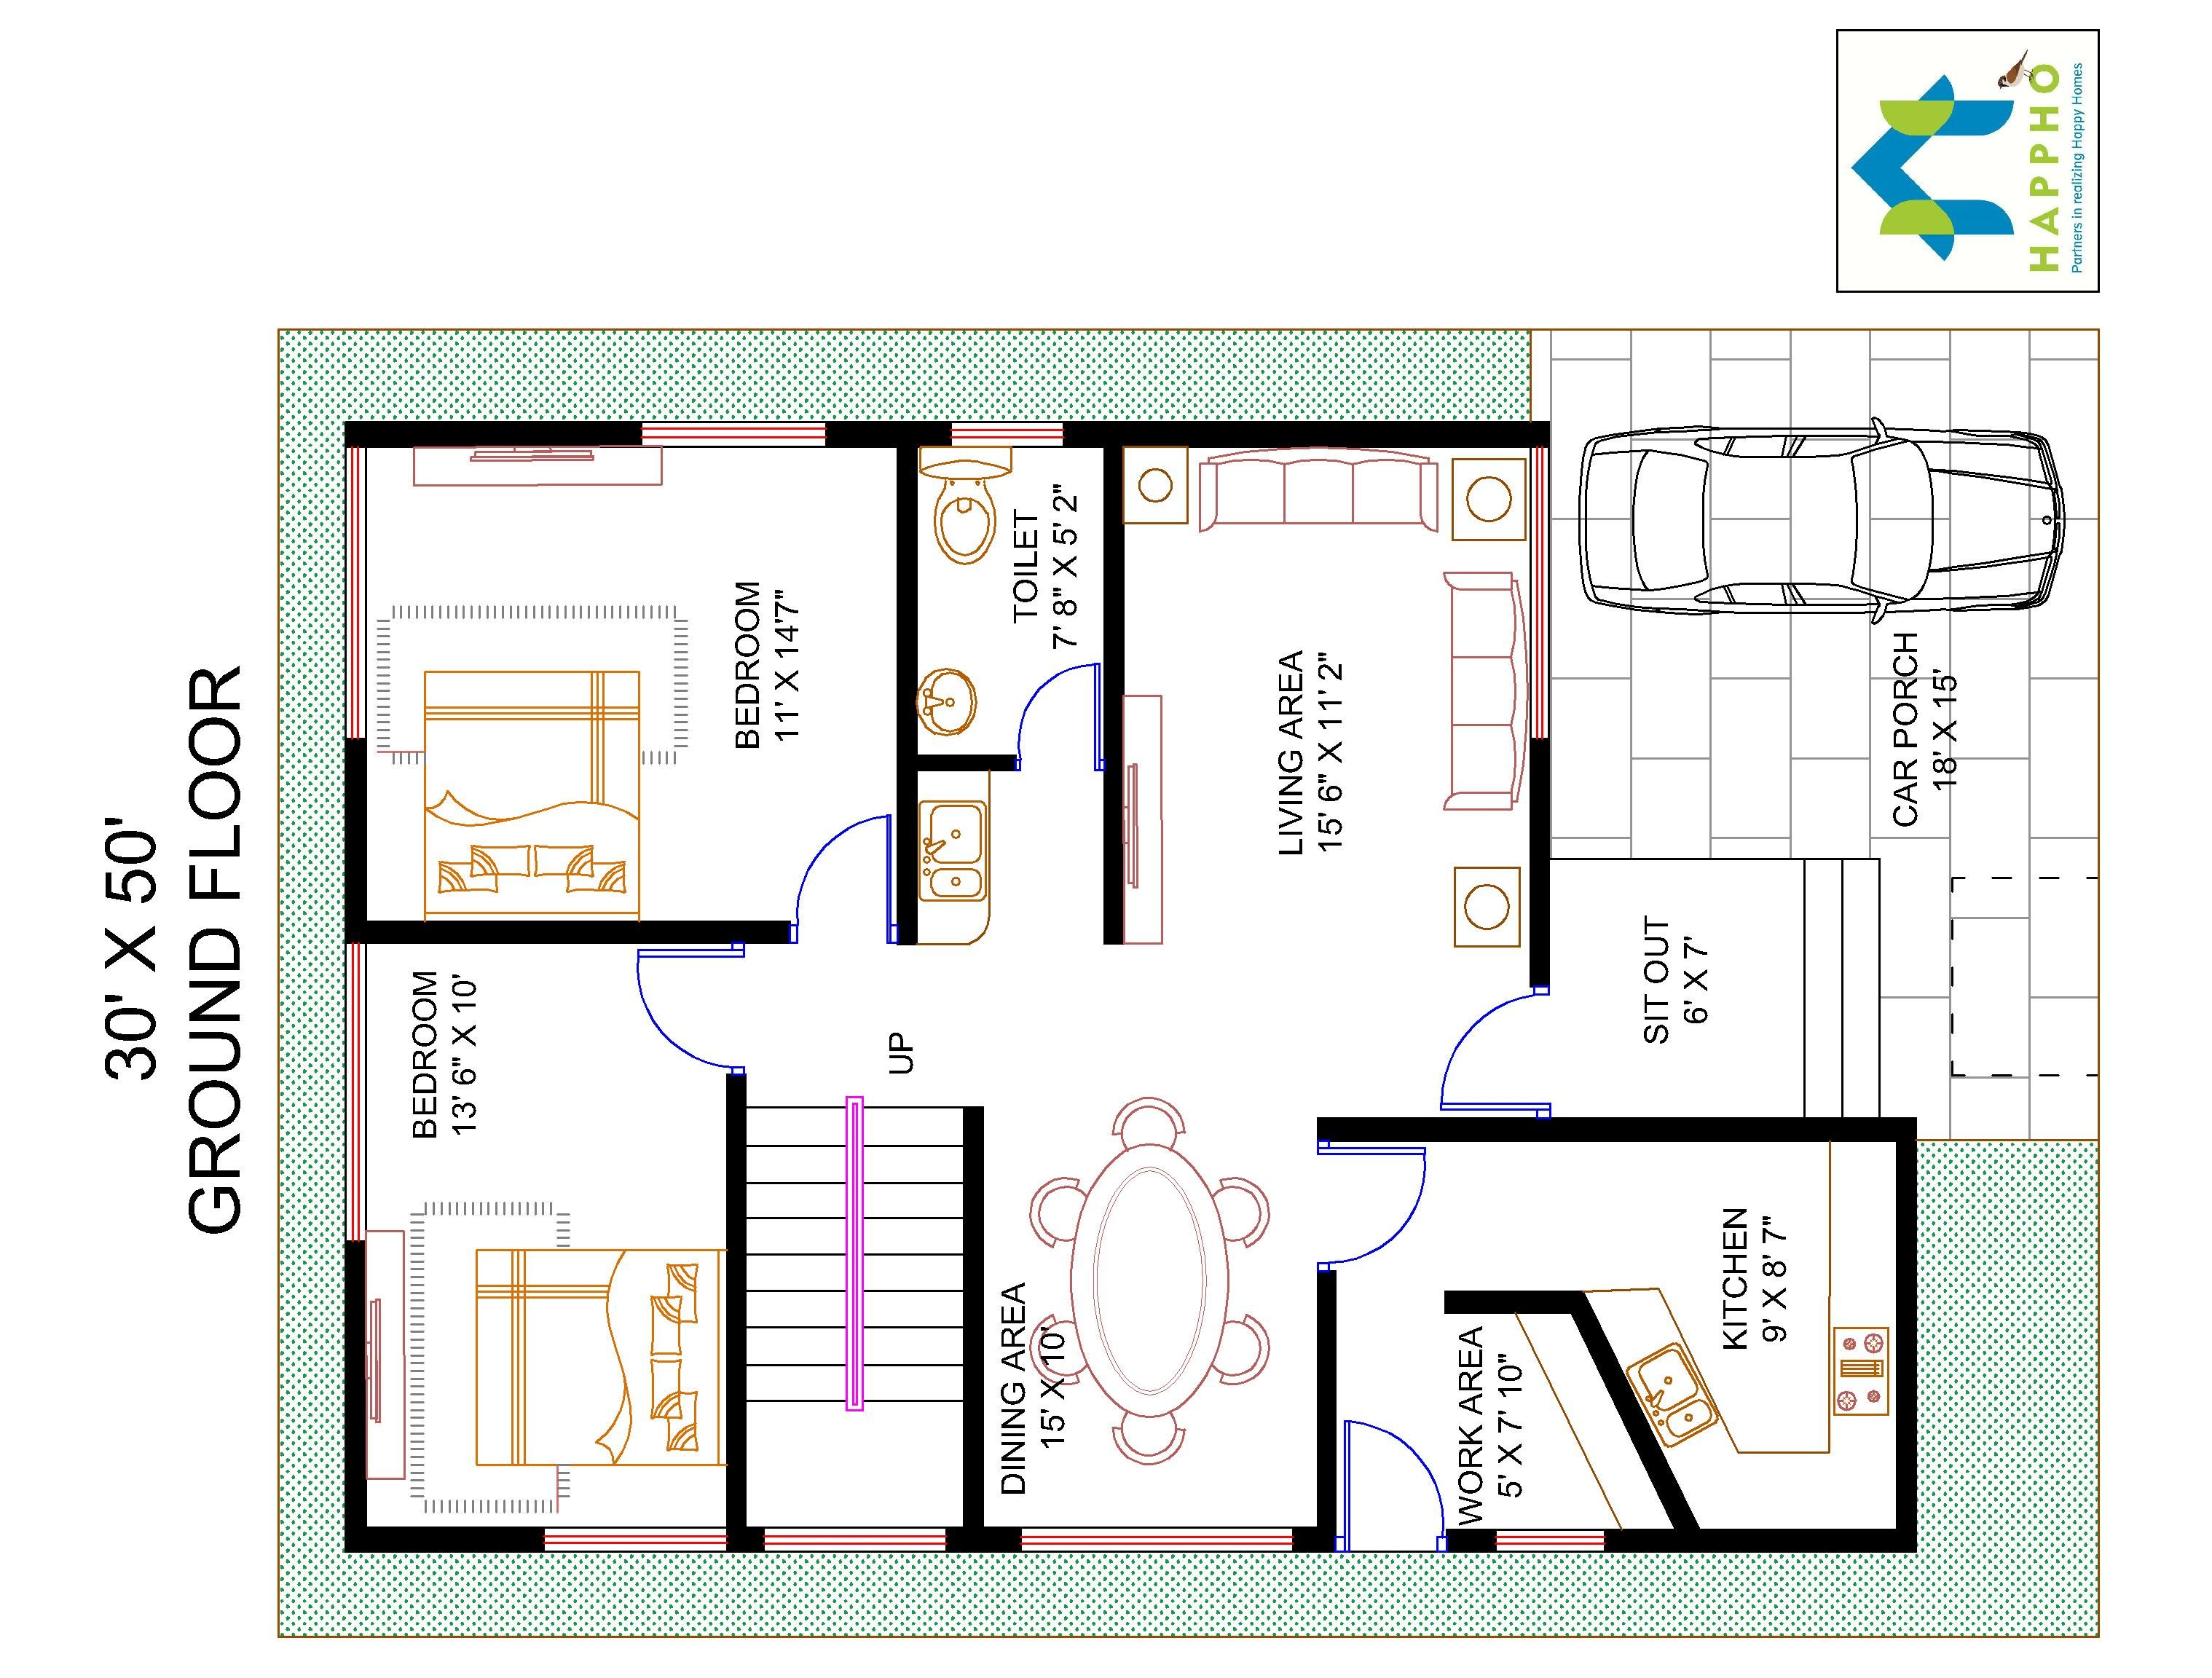 4 bhk floor plan for 30 x 50 plot 1500 square feet 166